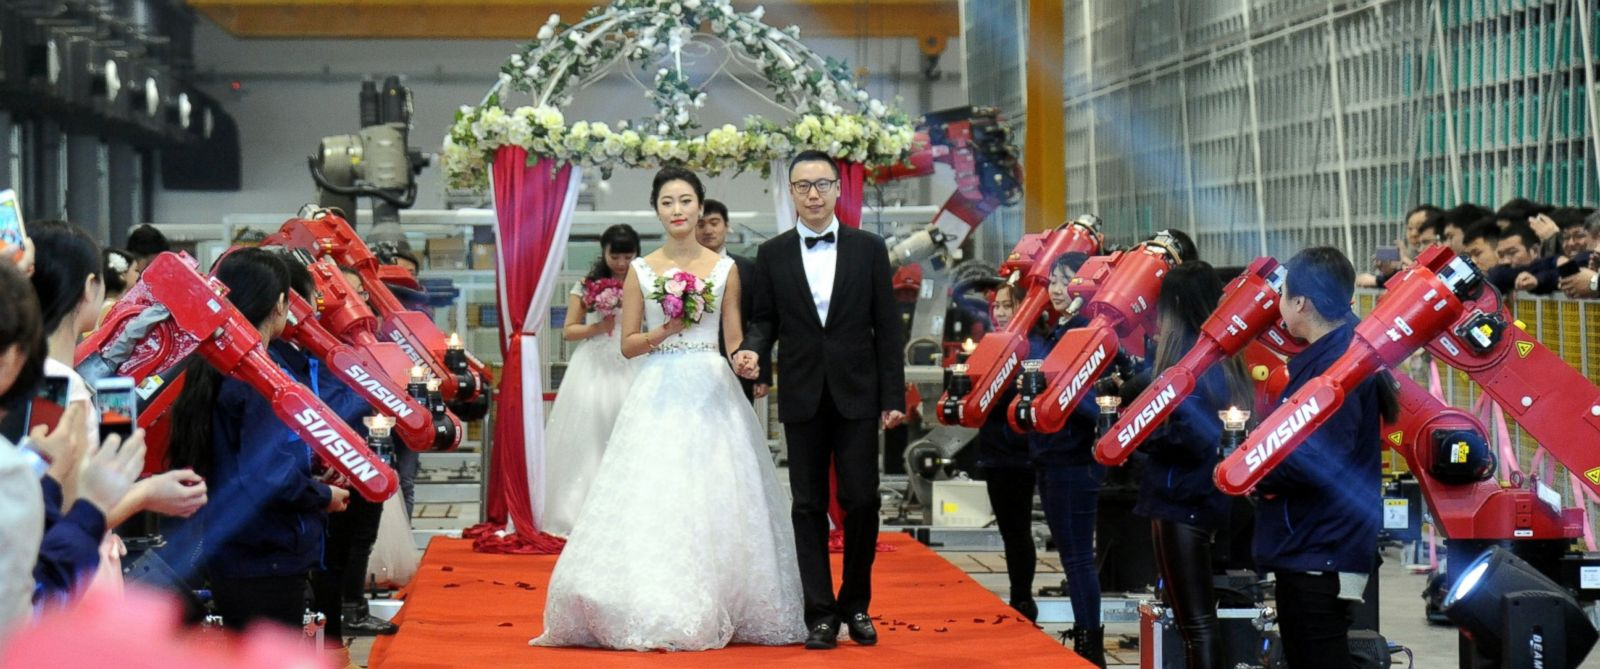 Good Morning America Robot : A robot factory hosts group wedding in china abc news